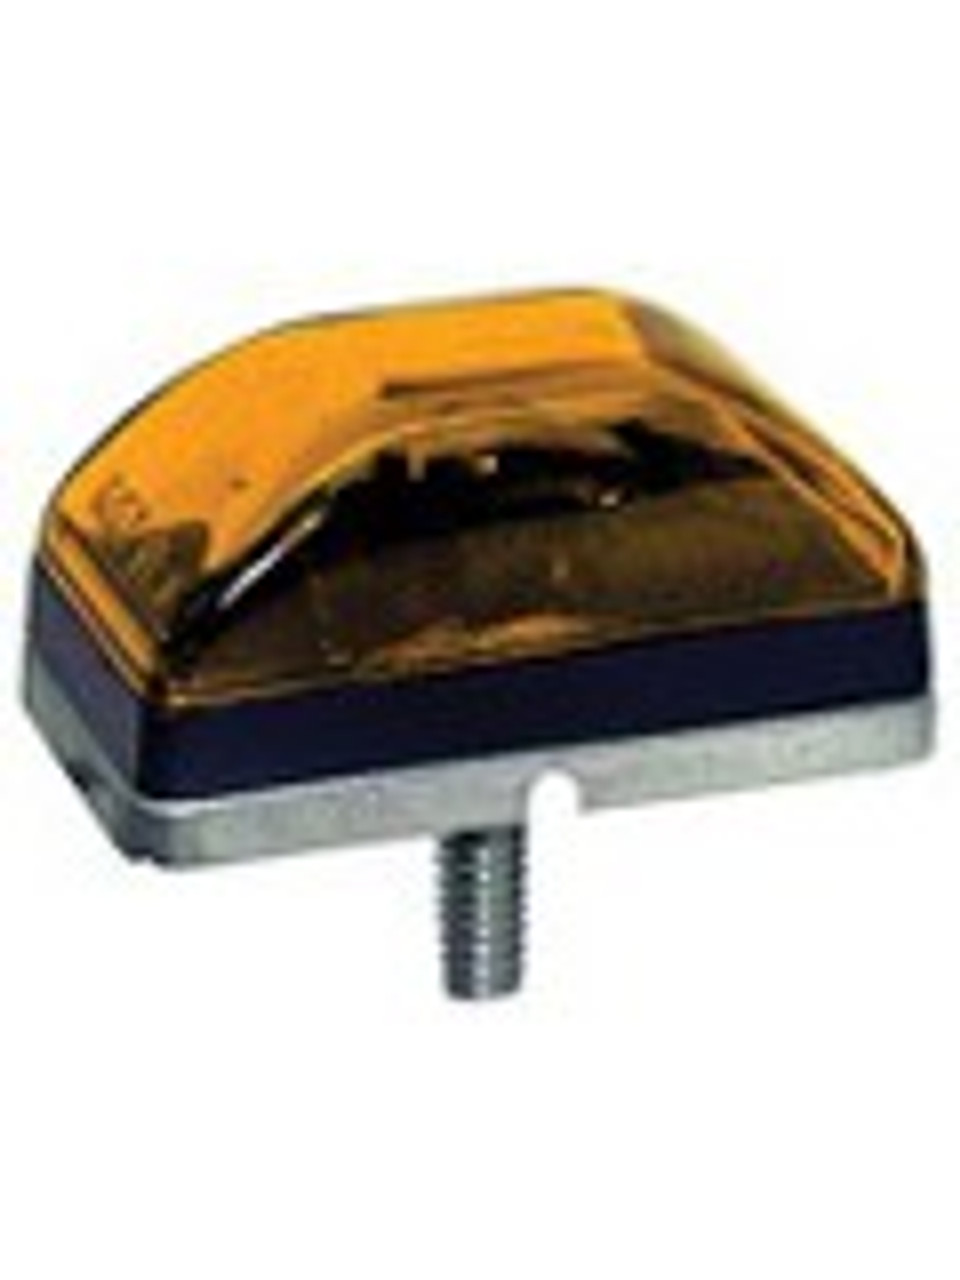 151A --- Mini-Light Clearance/Side Marker Light - Submersible